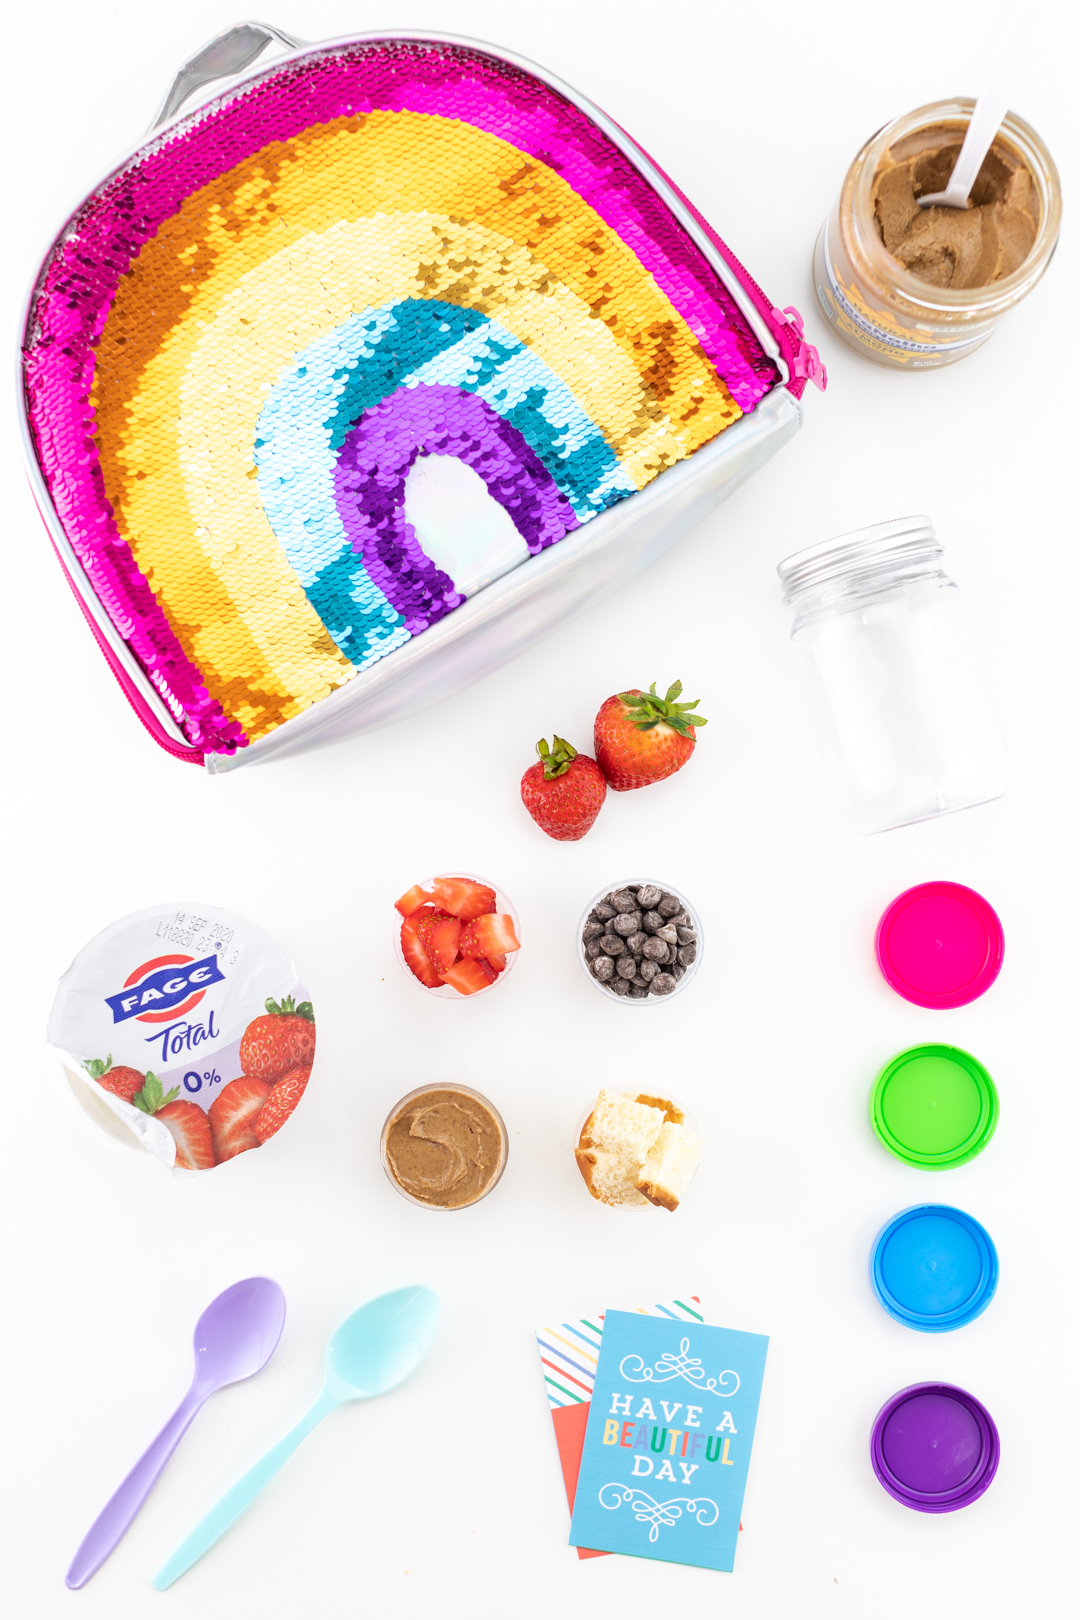 diy yogurt parfait kit for kids with toppings put into little separate containers